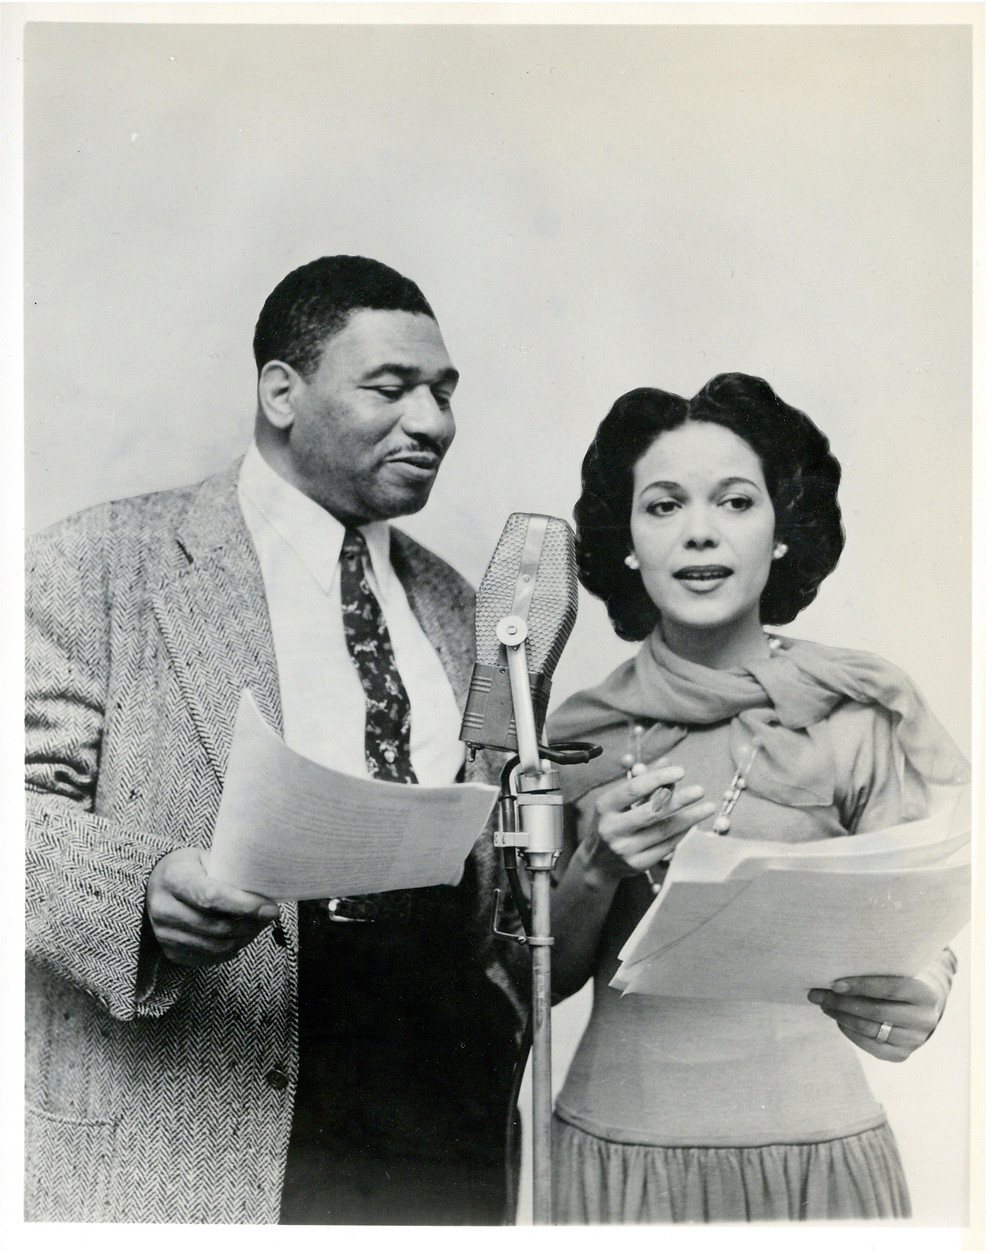 Narrators Frederick O'Neal and Hilda Simms